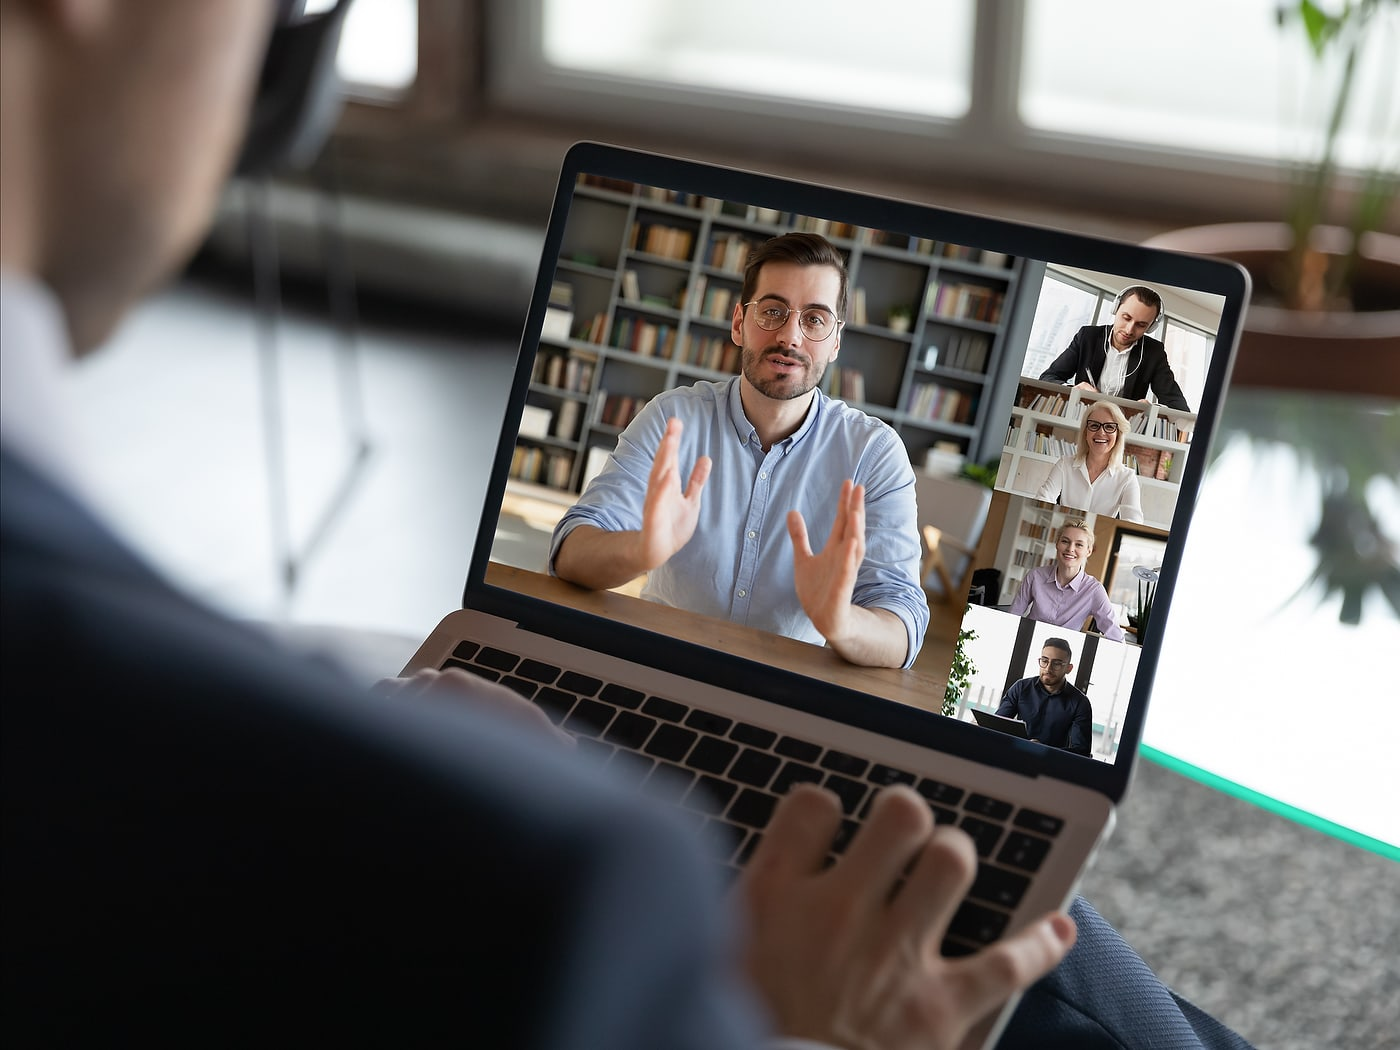 virtual event example using Zoom meeting